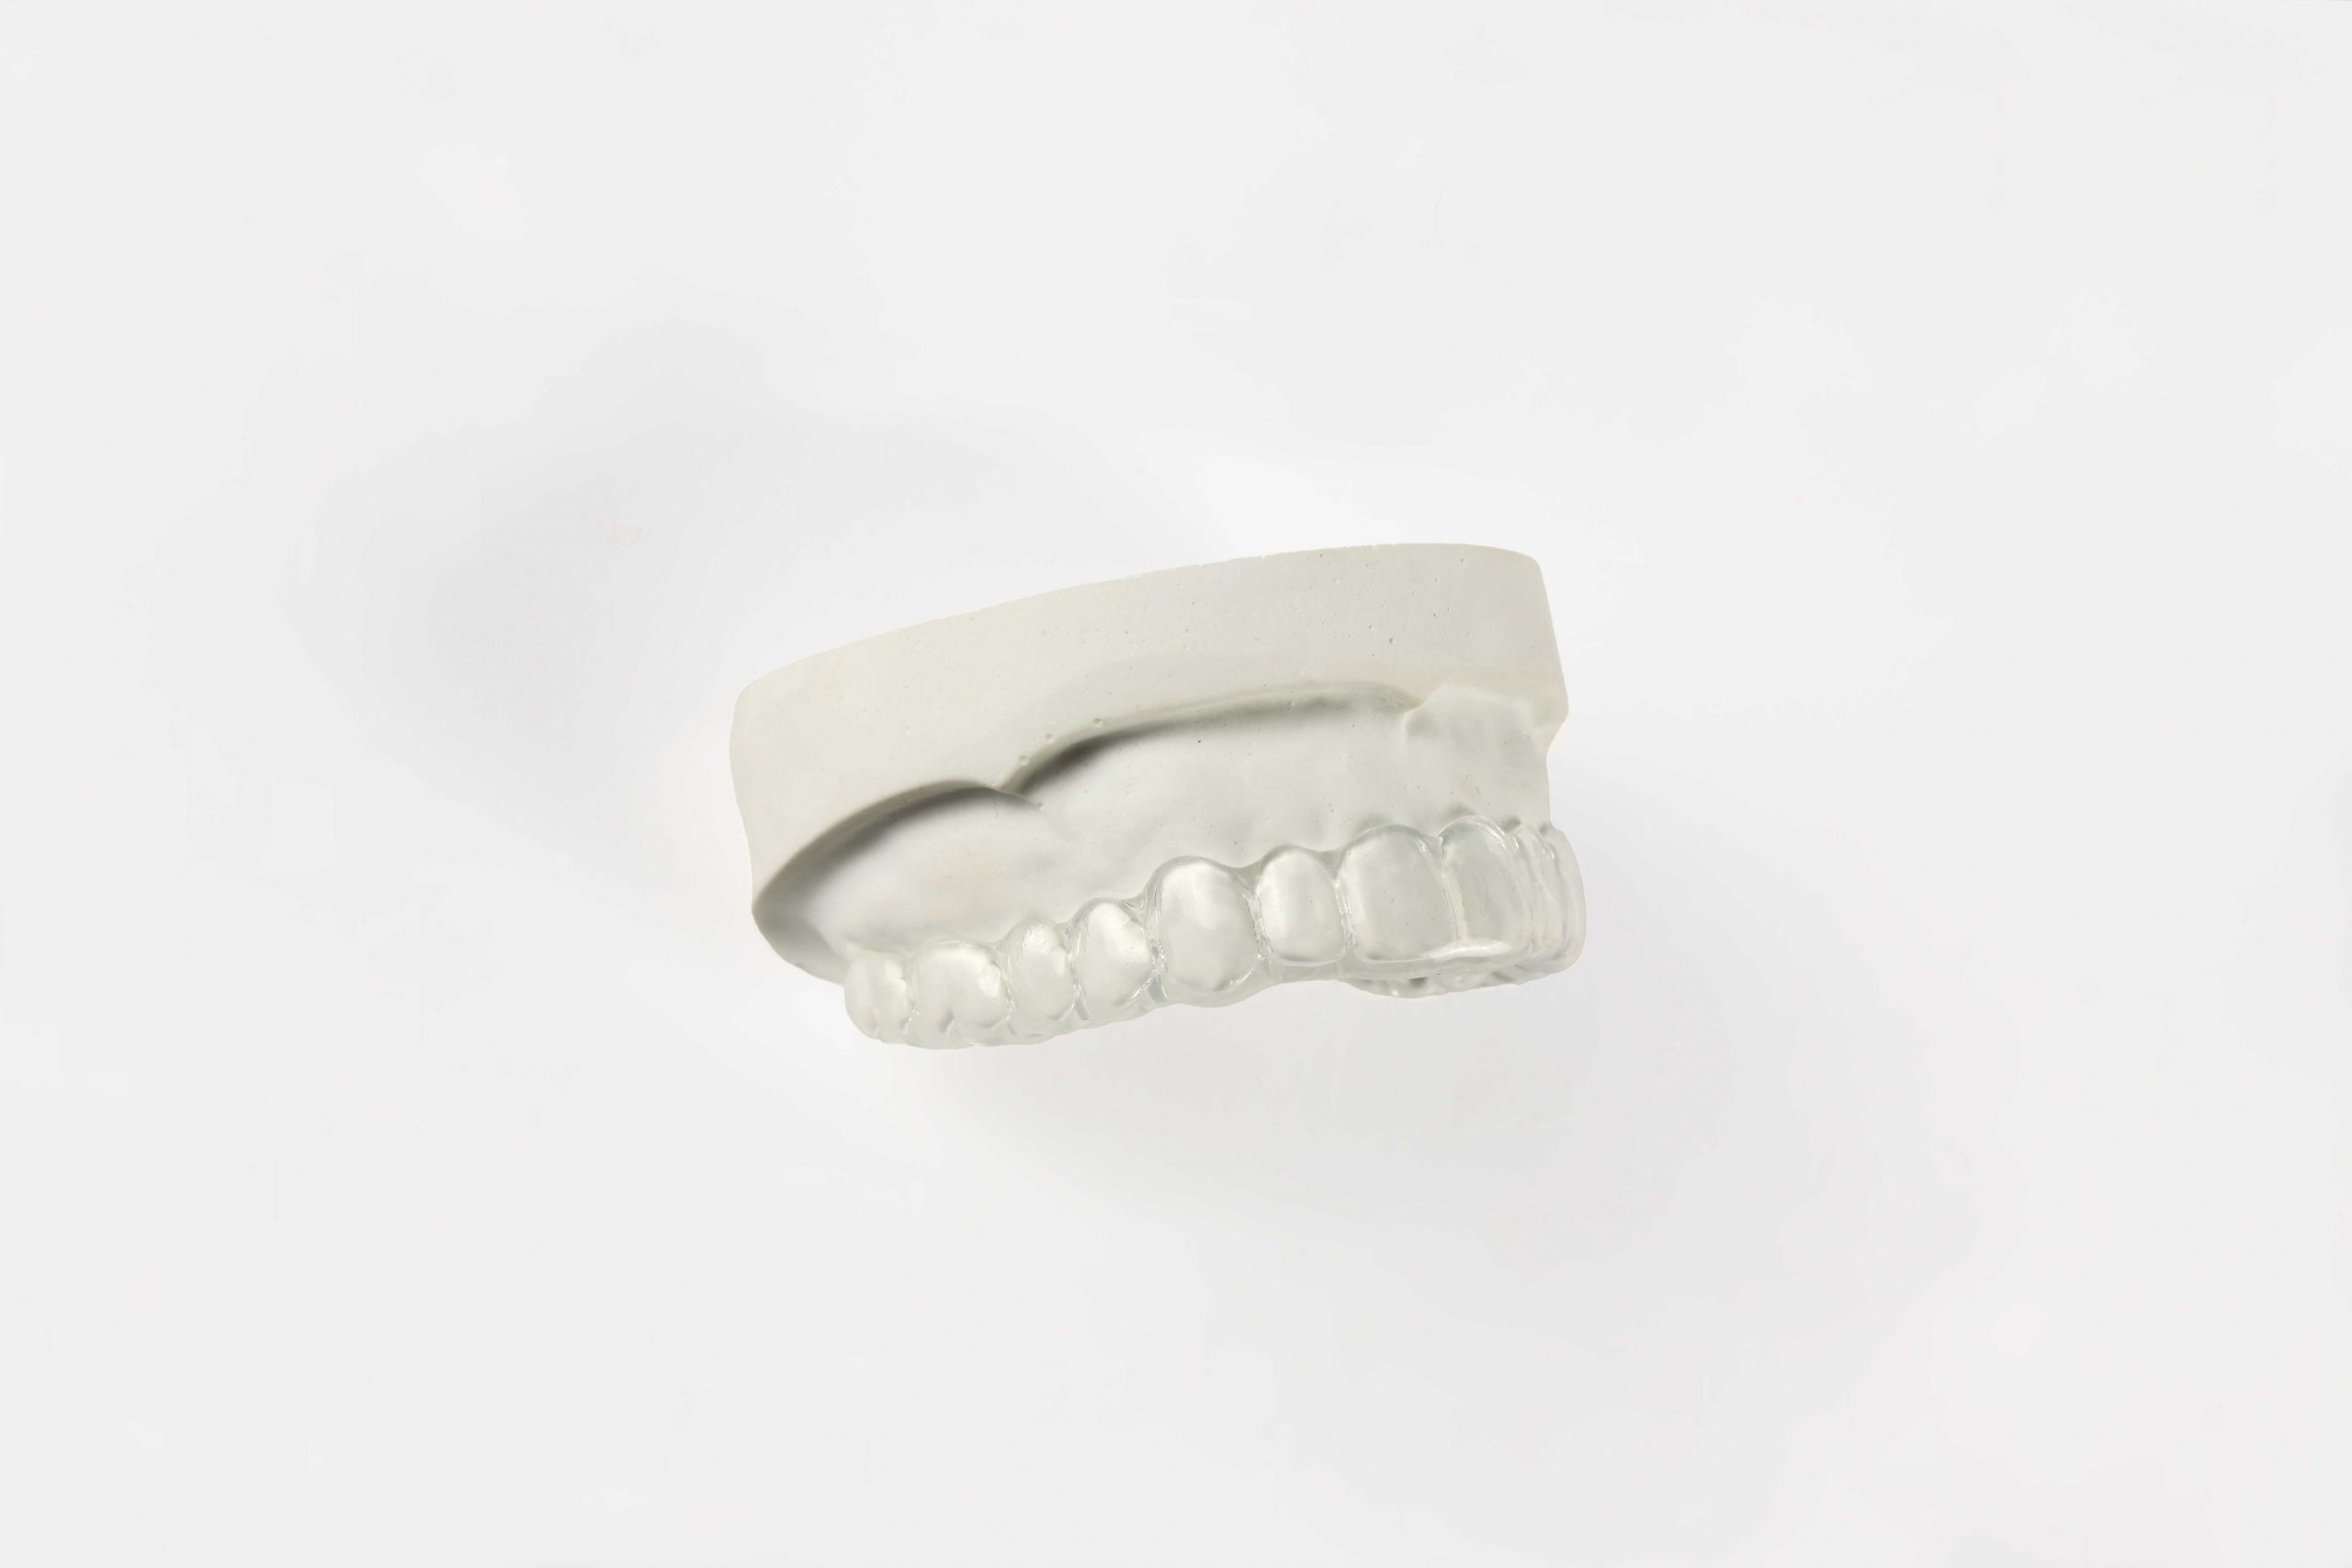 Removable abutments